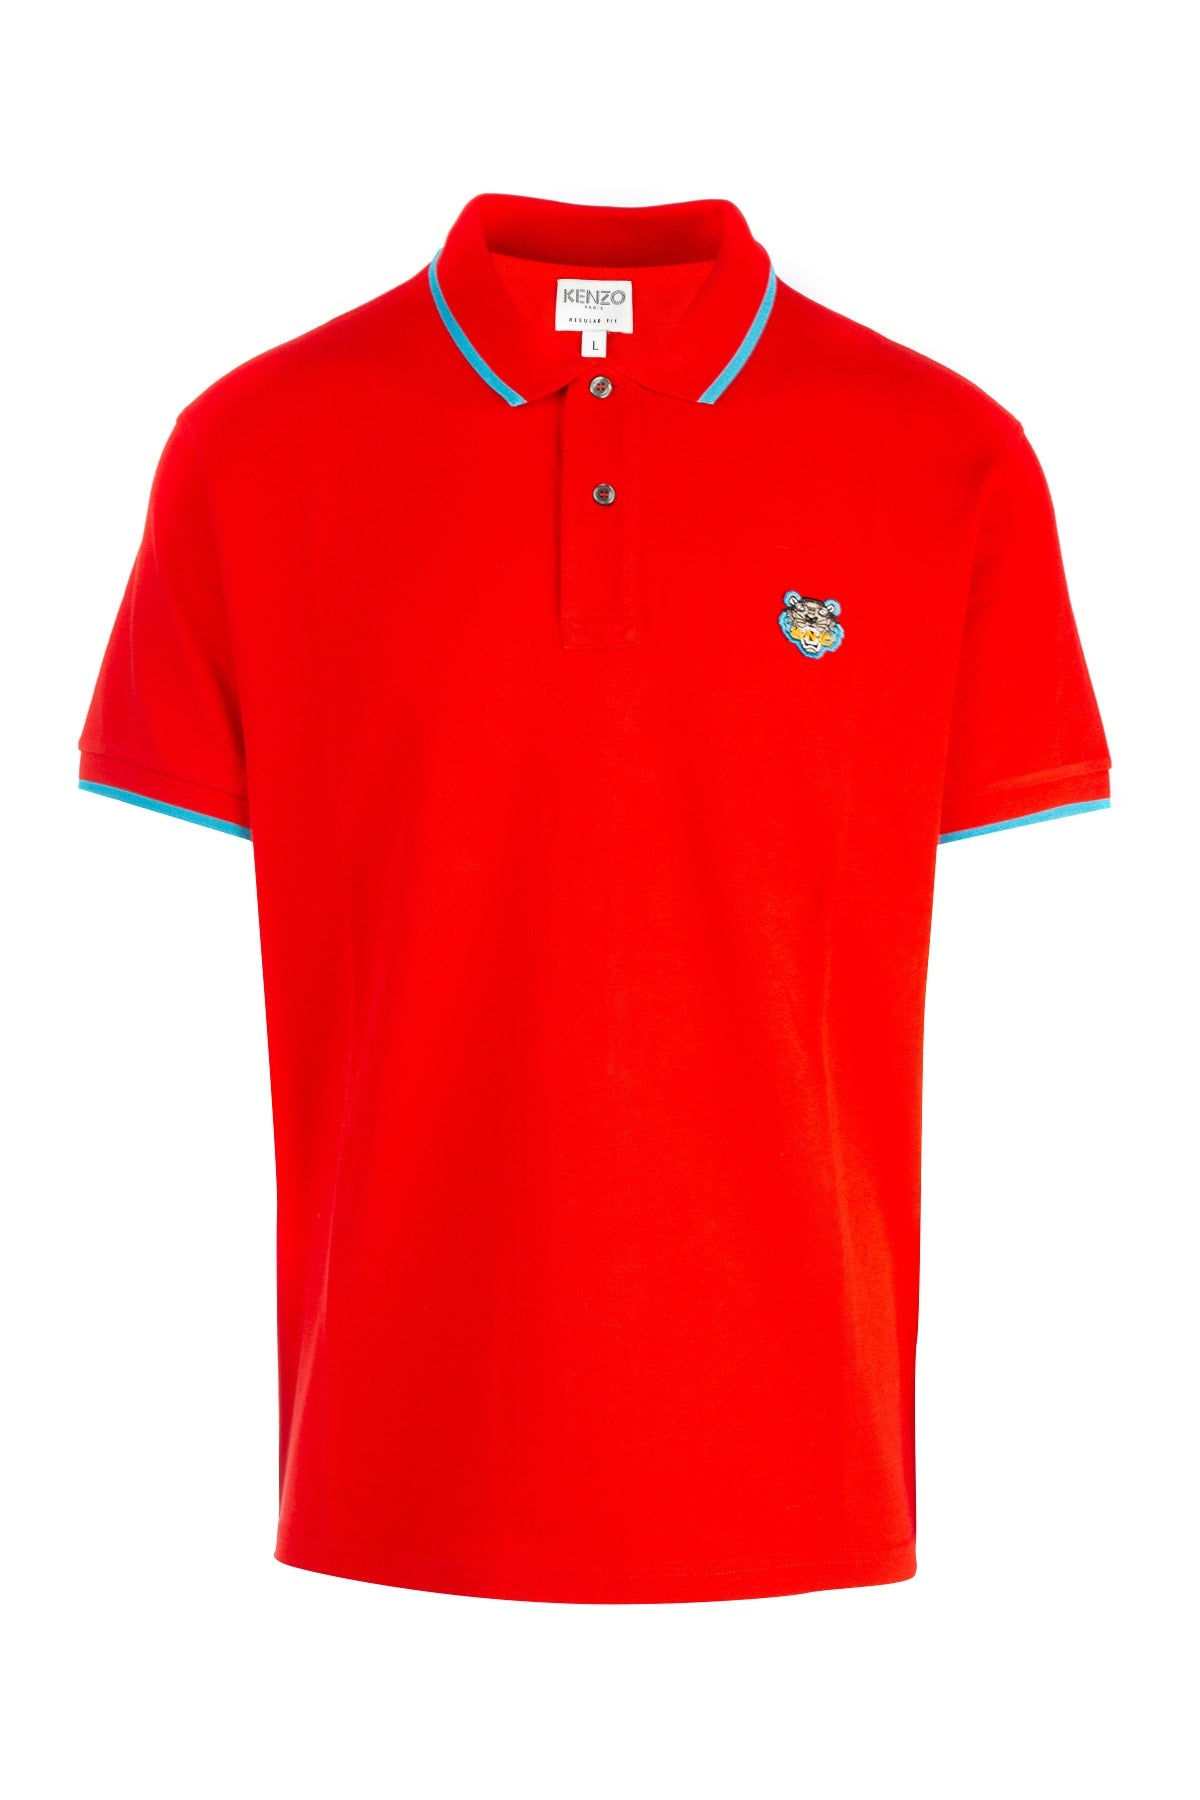 Kenzo Tiger Crest Polo Shirt In Red